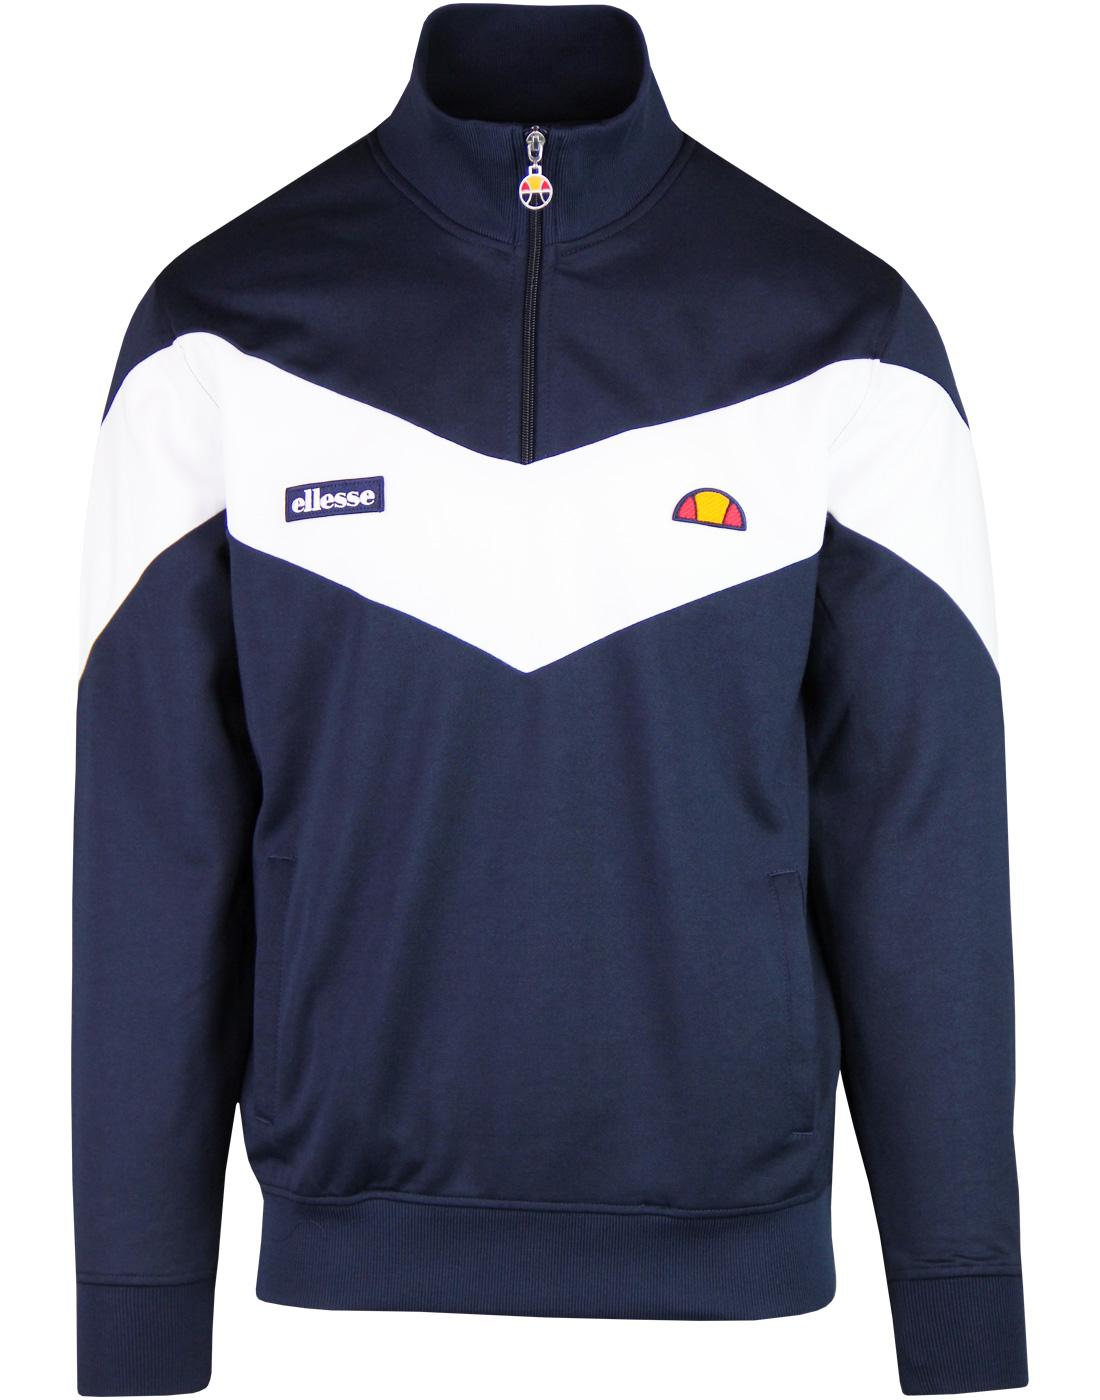 Arrow ELLESSE Retro Quarter Zip Chevron Track Top